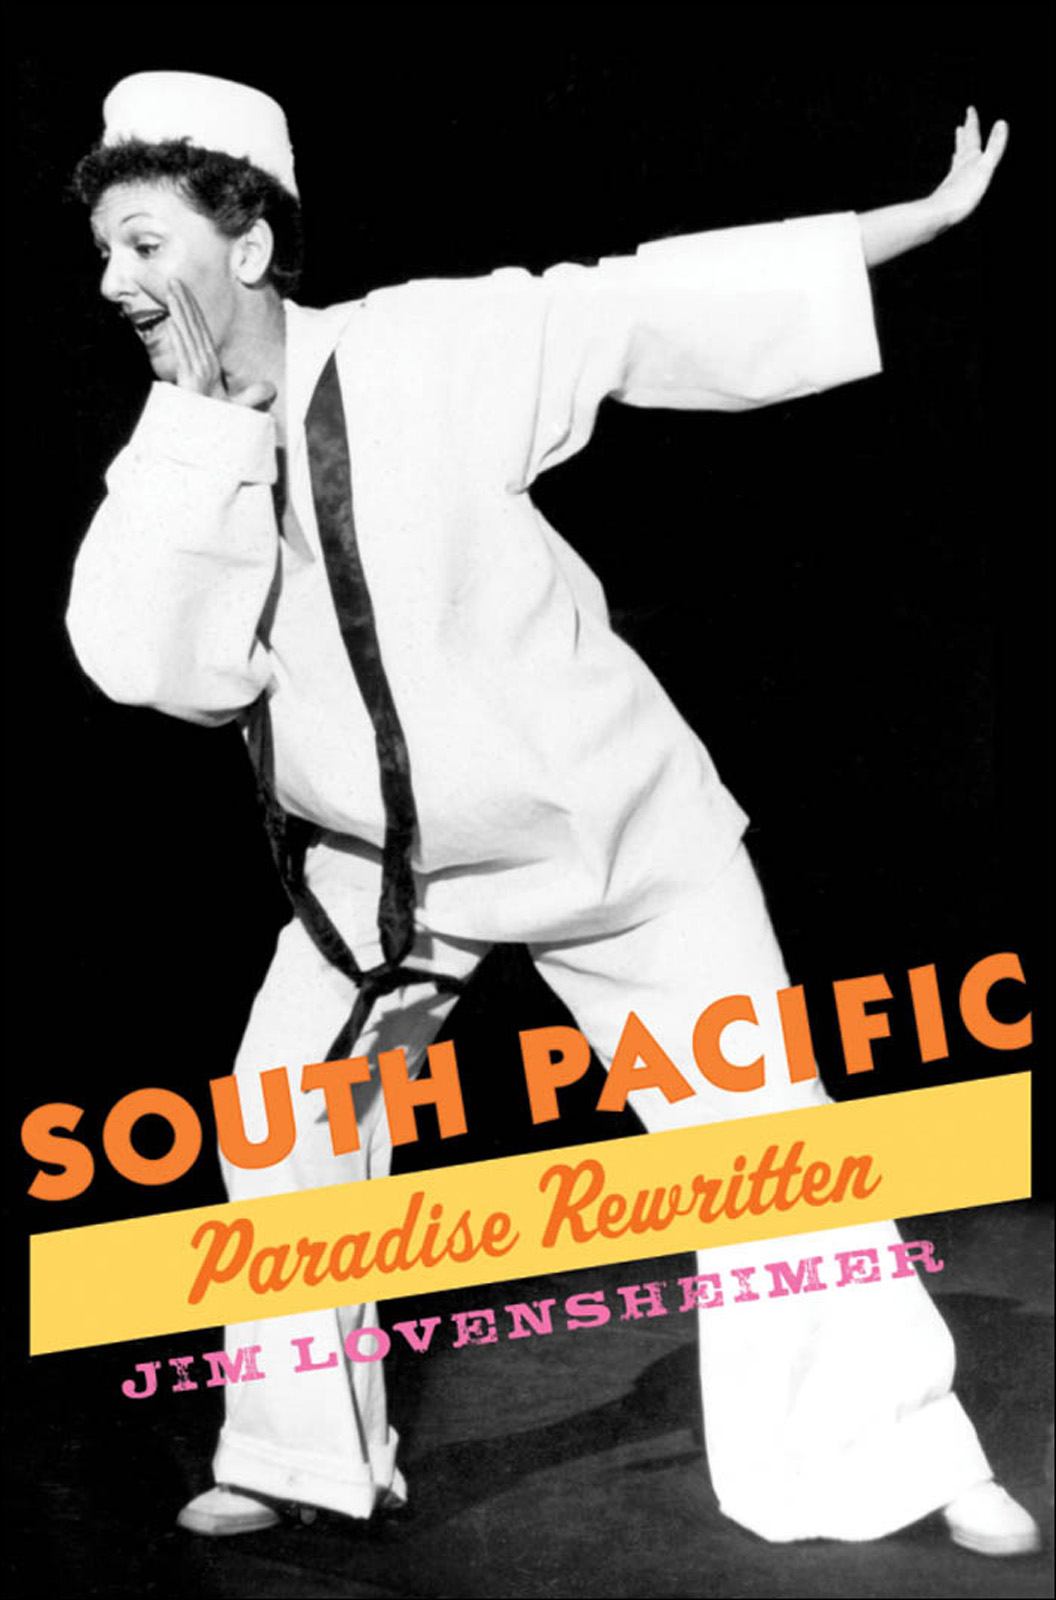 South Pacific:Paradise Rewritten